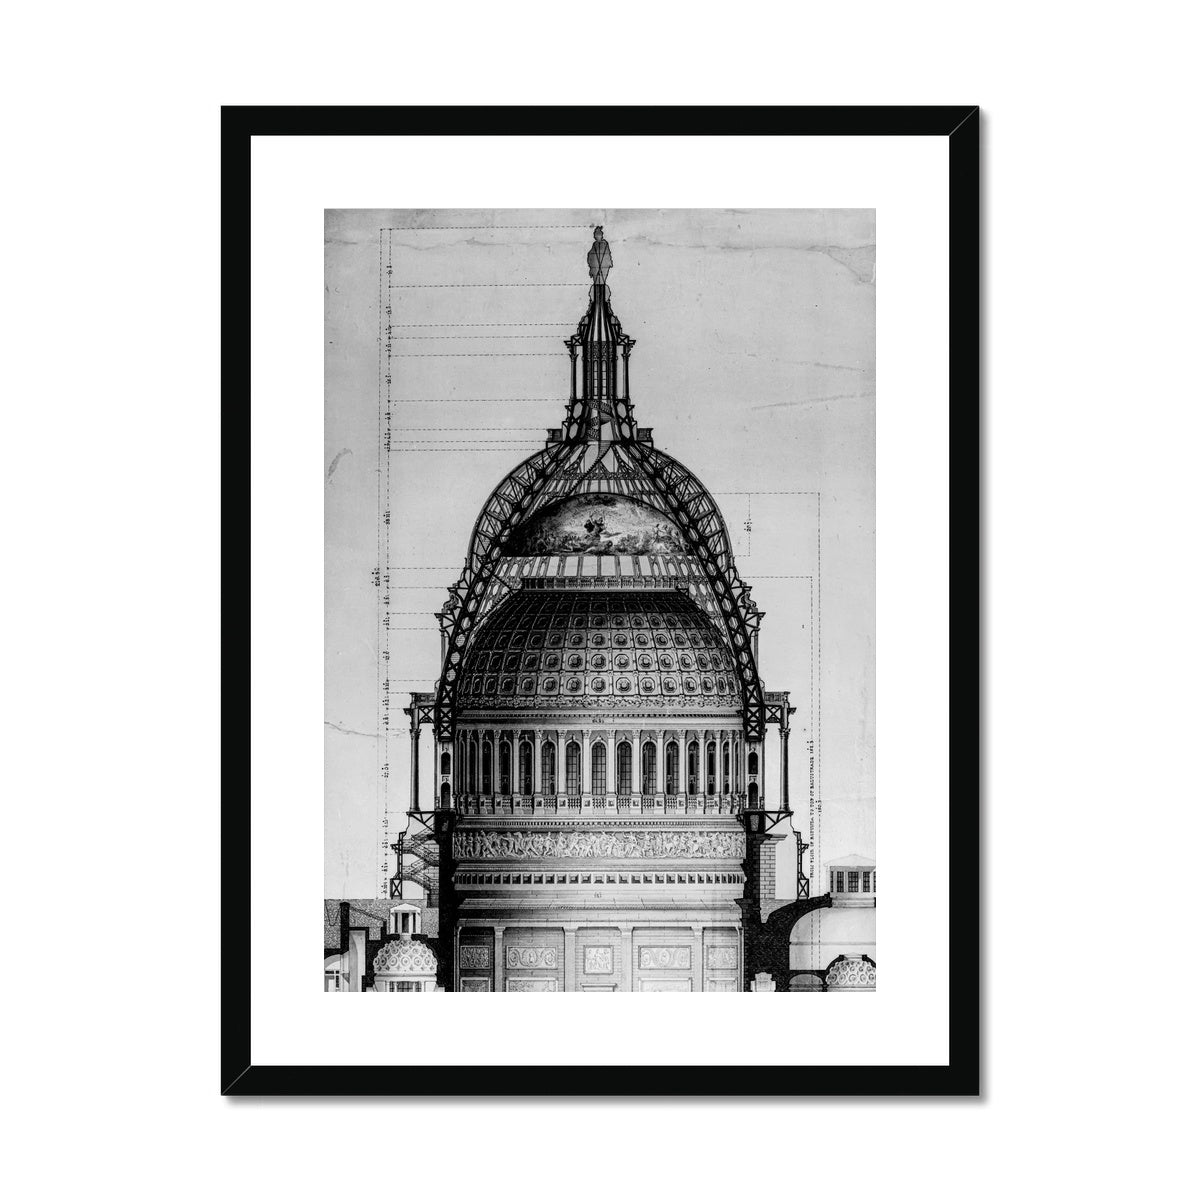 The U.S. Capitol Building - Dome Cross Section - White -  Framed & Mounted Print